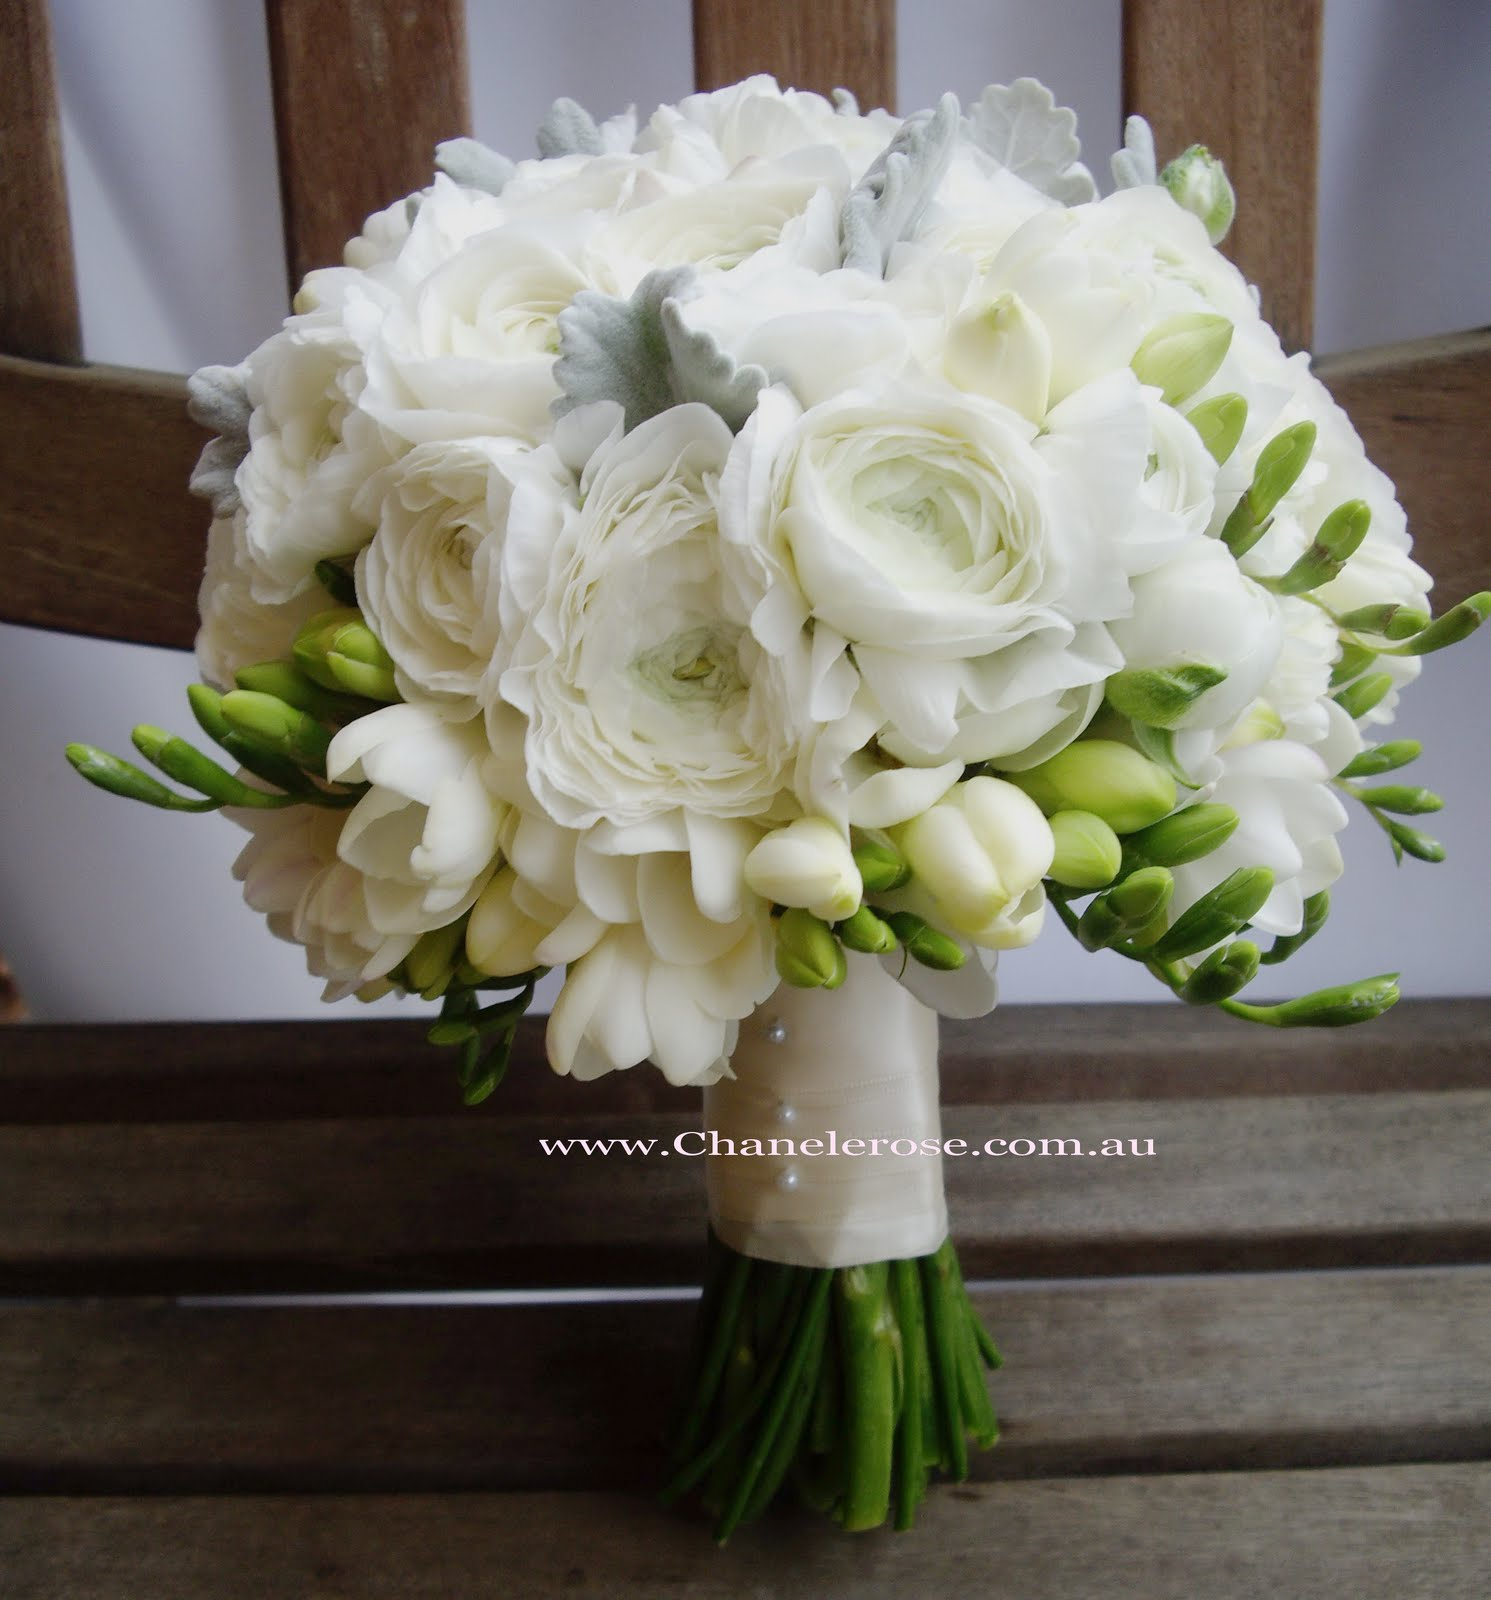 Chanele rose flowers blog sydney wedding stylist florist white rannunculus bridal bouquet mightylinksfo